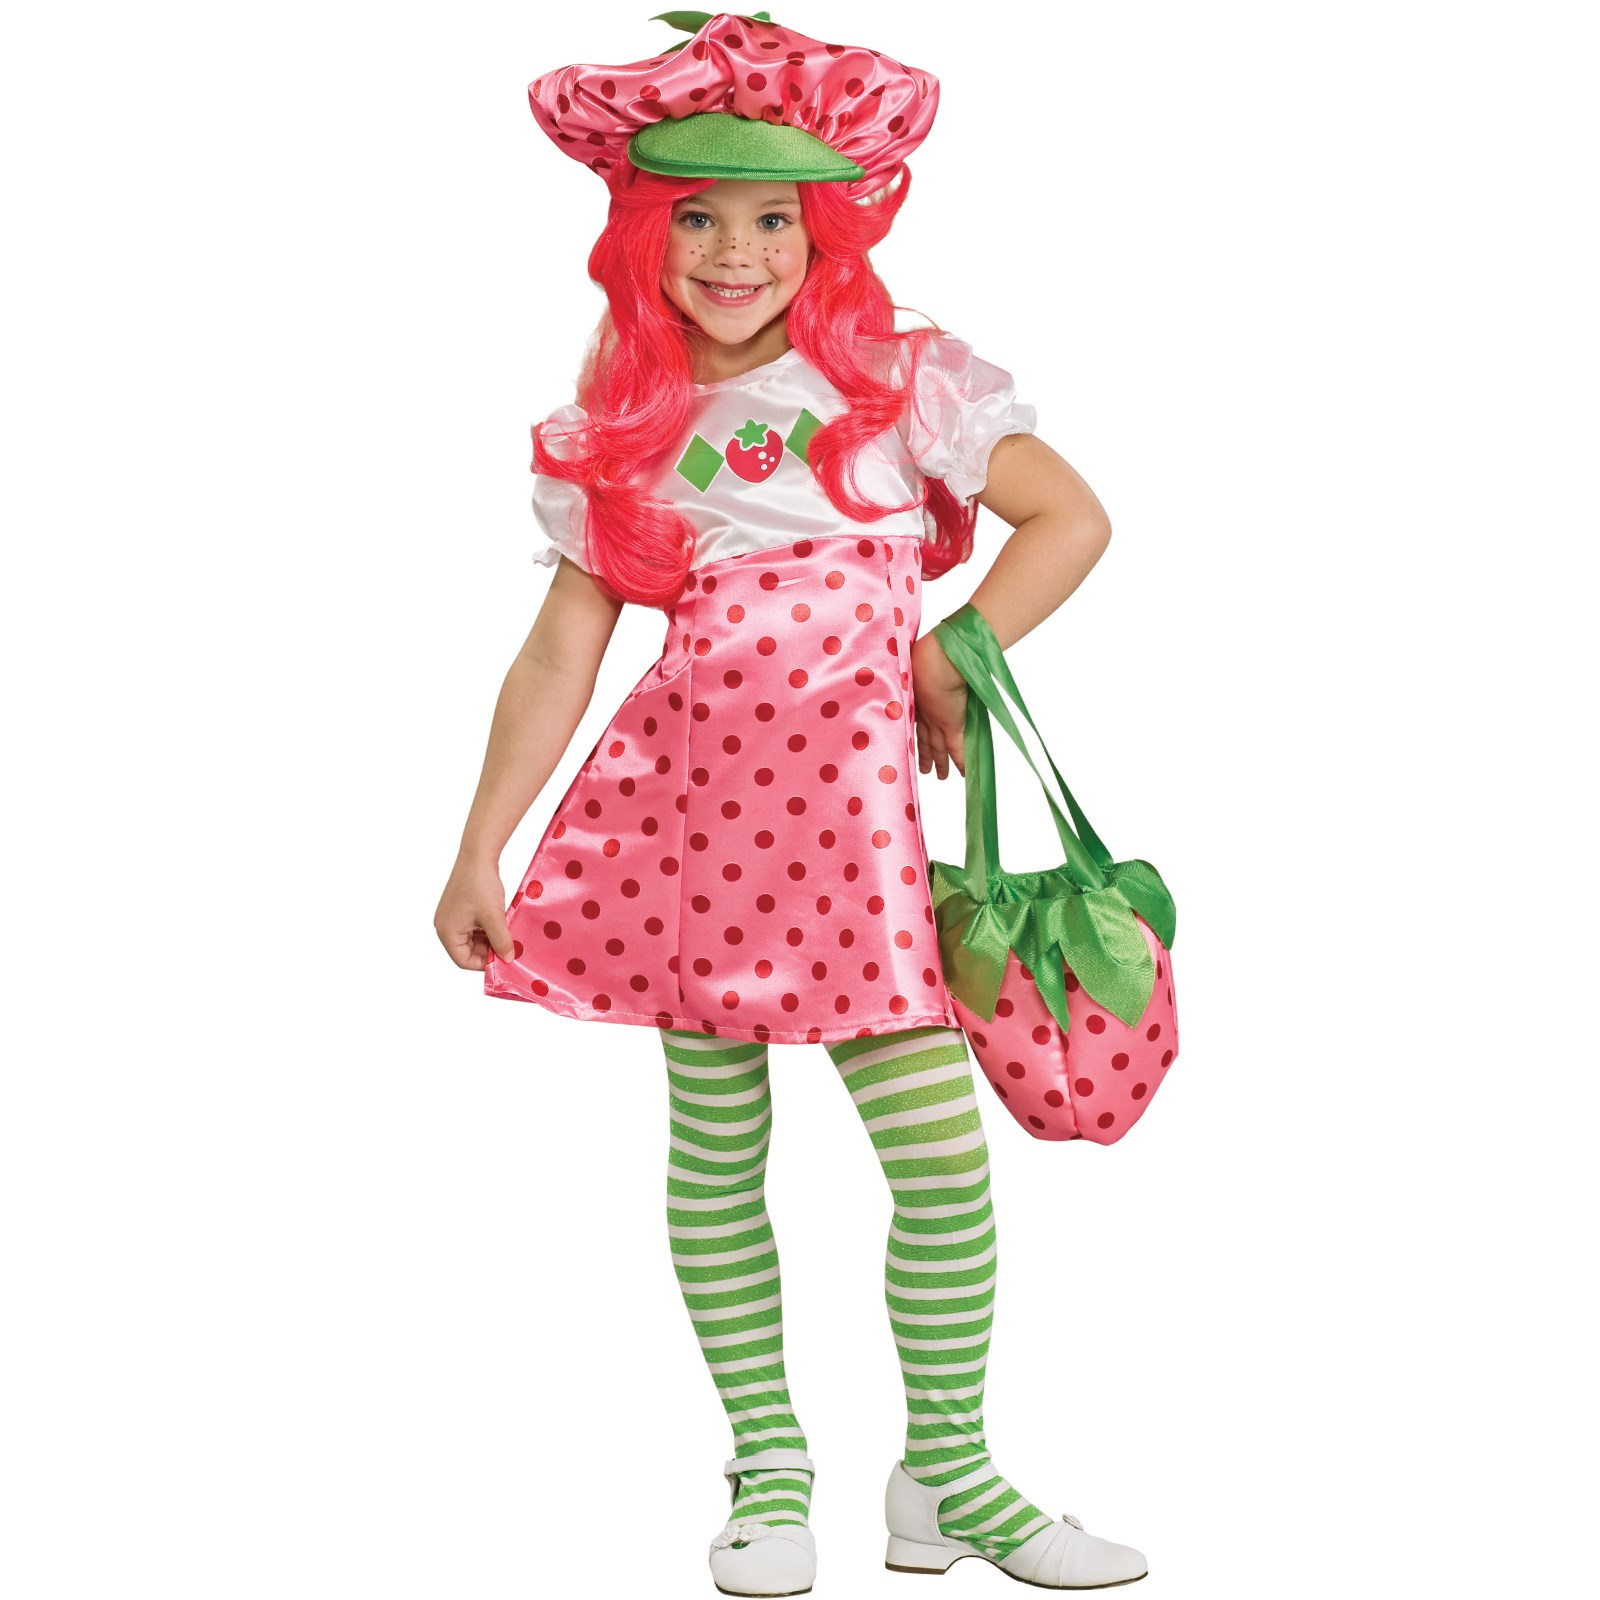 Strawberry Shortcake Deluxe Toddler / Child Costume Toddler